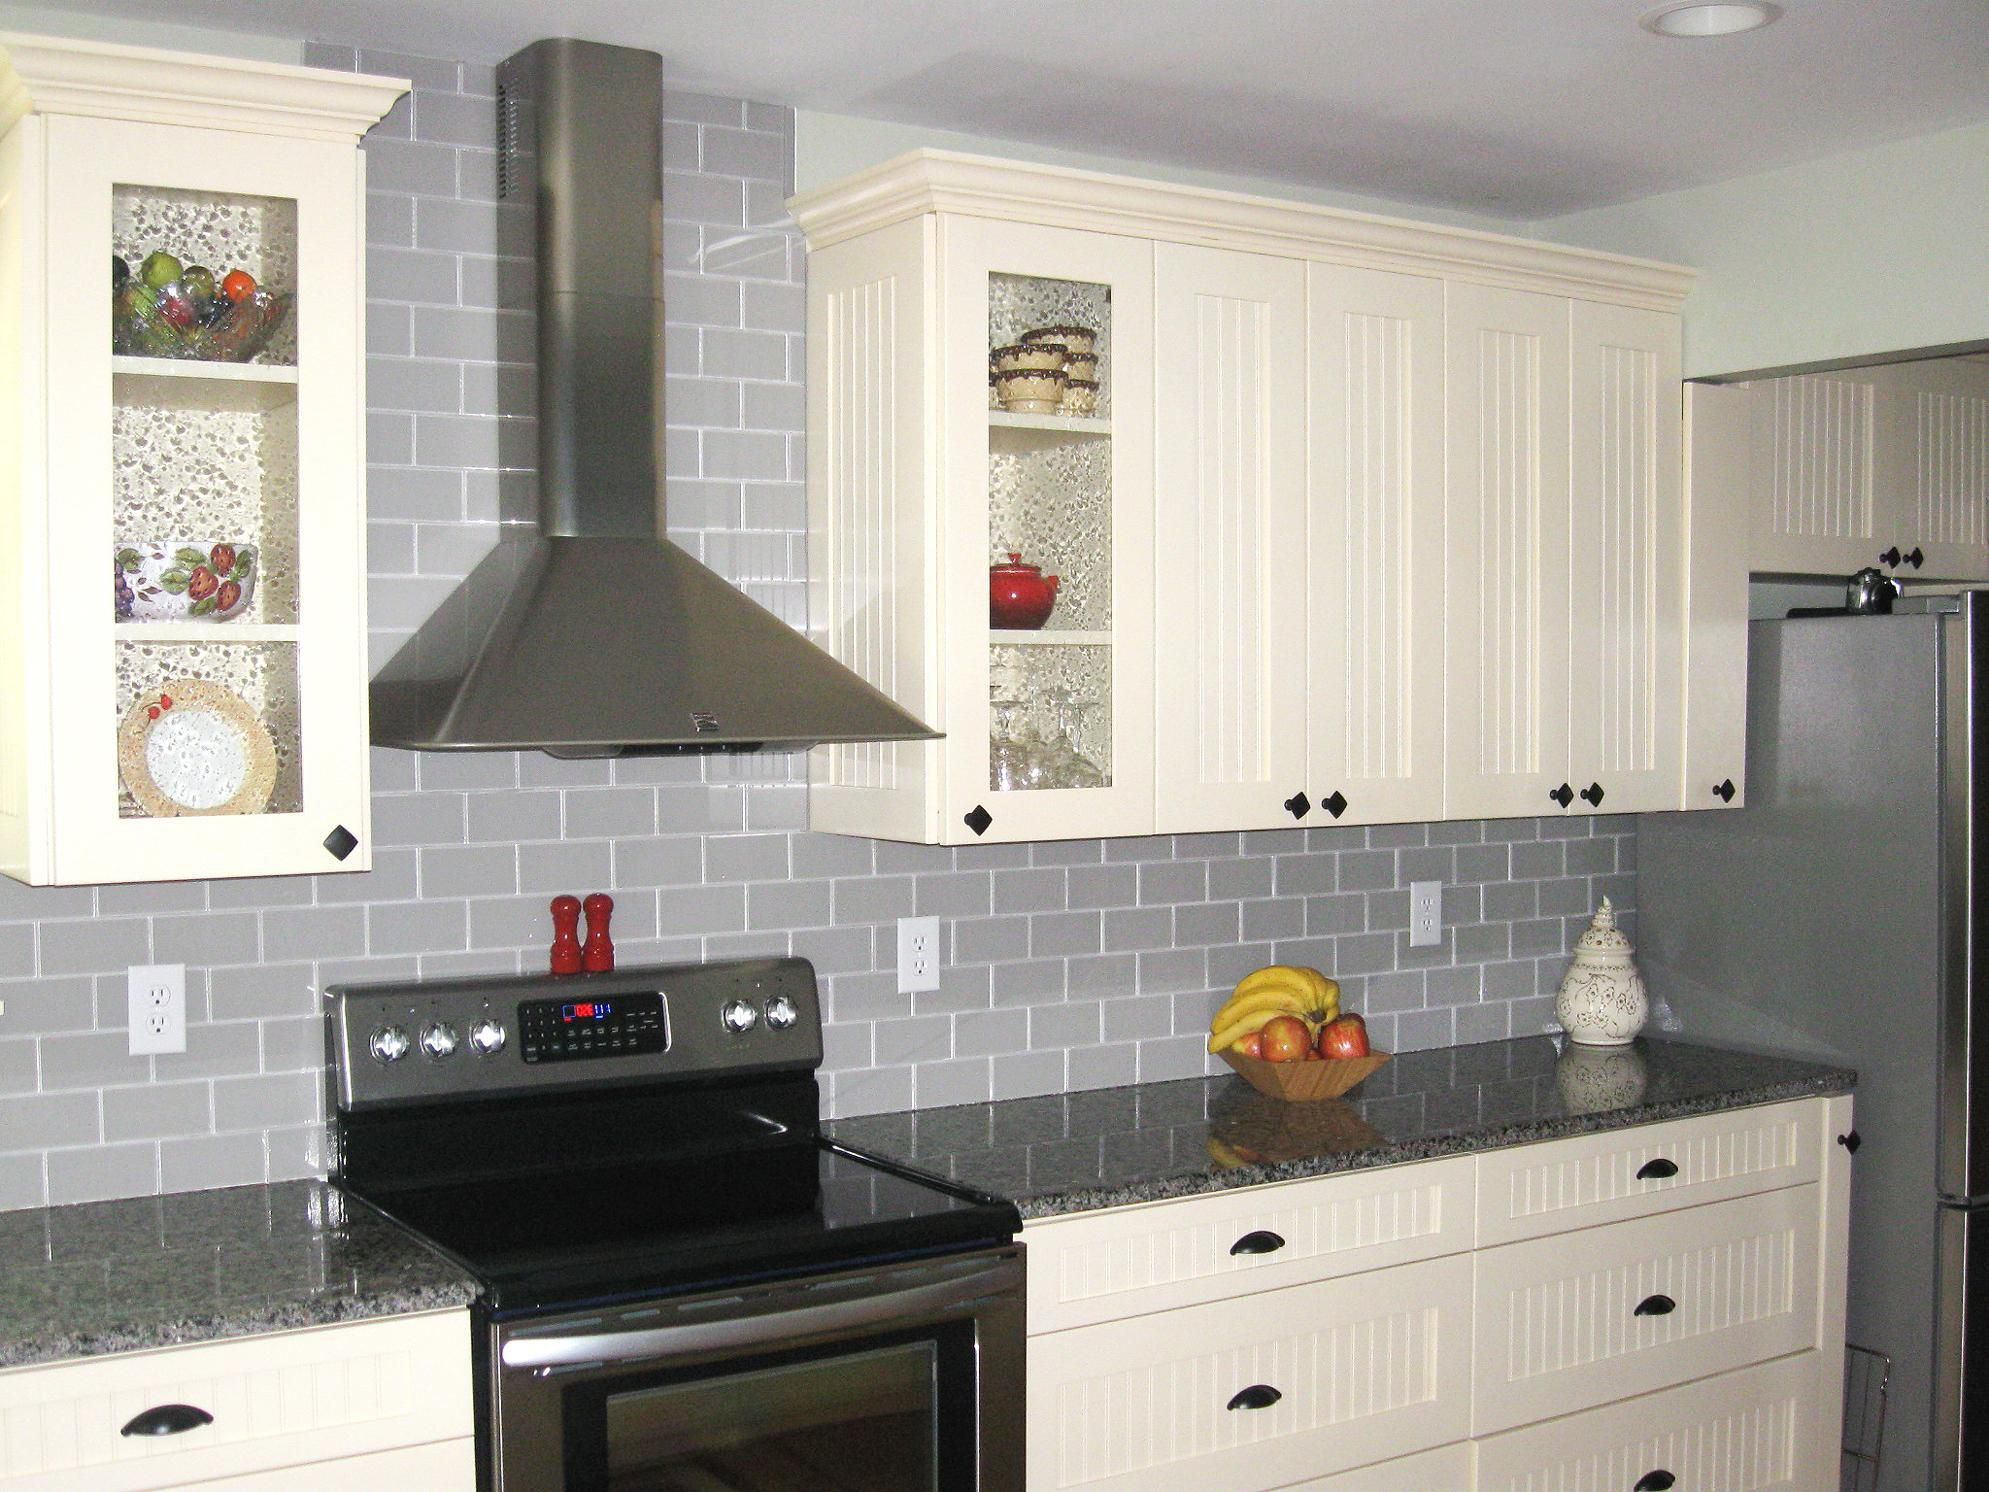 white kitchen cabinet ideas black and grey backsplash for cabinets wood gray island floor with. Black Bedroom Furniture Sets. Home Design Ideas